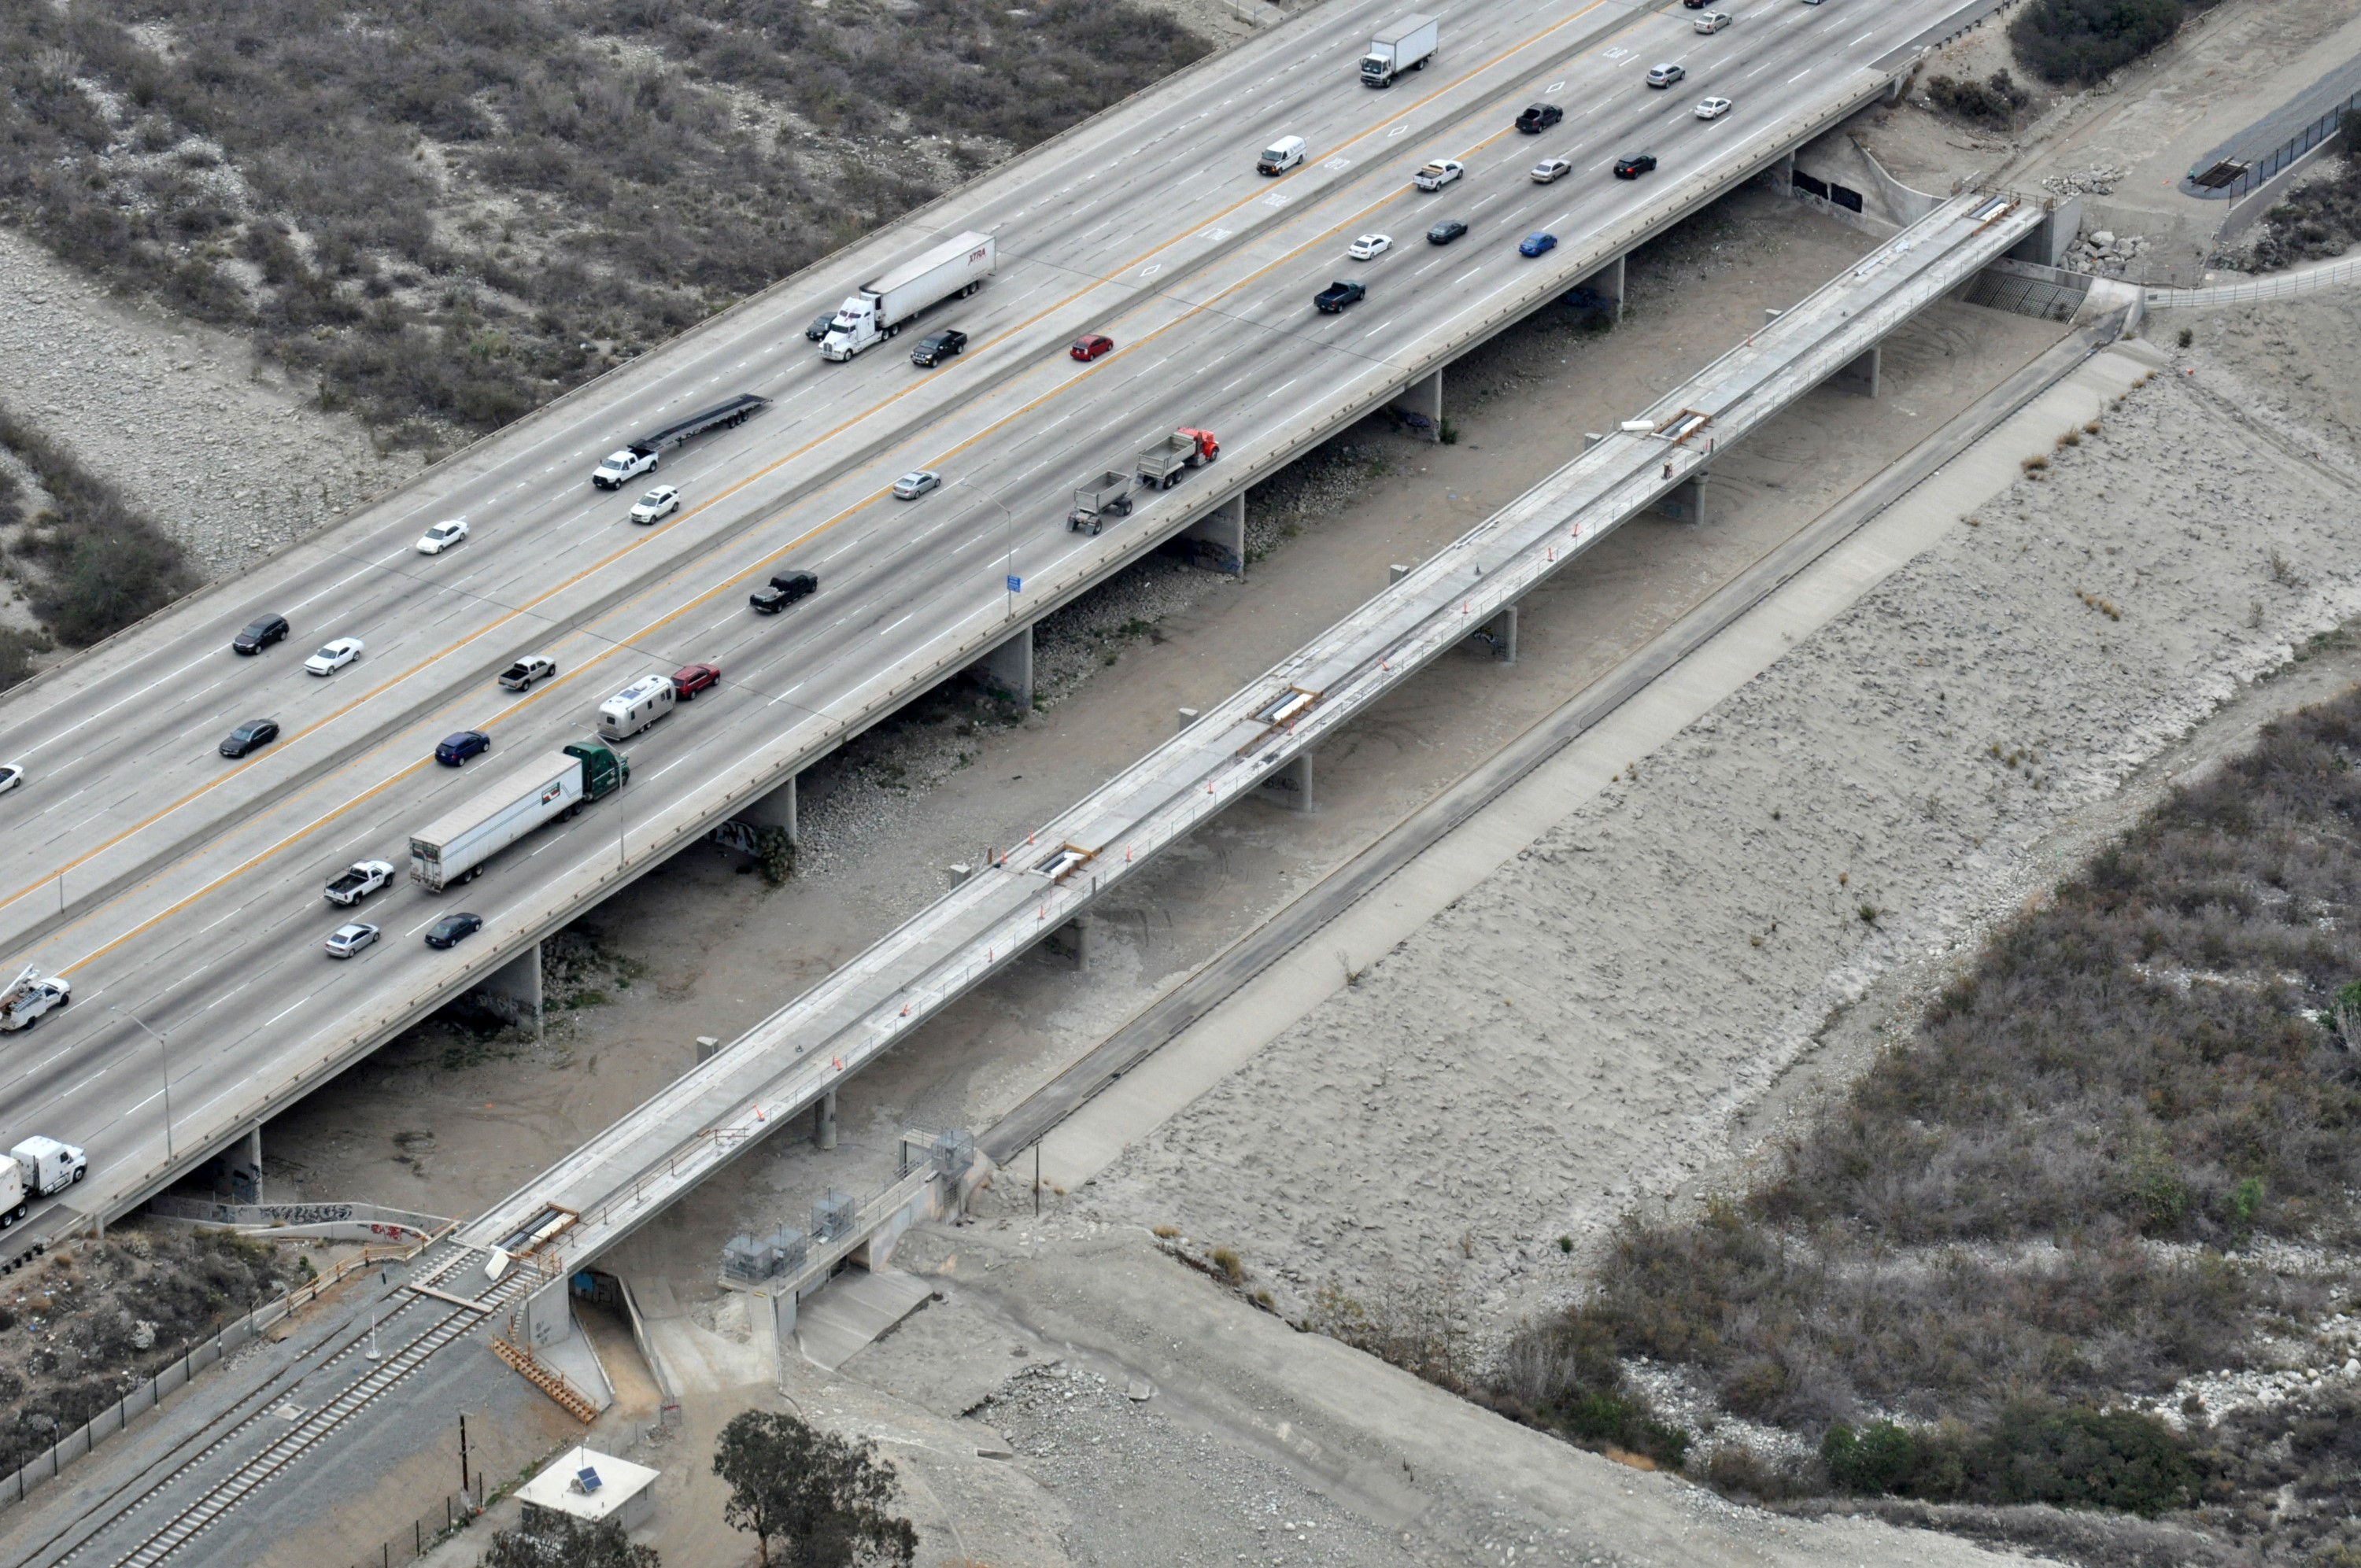 San_Gabriel_River_Bridge_(2)_-_aerial